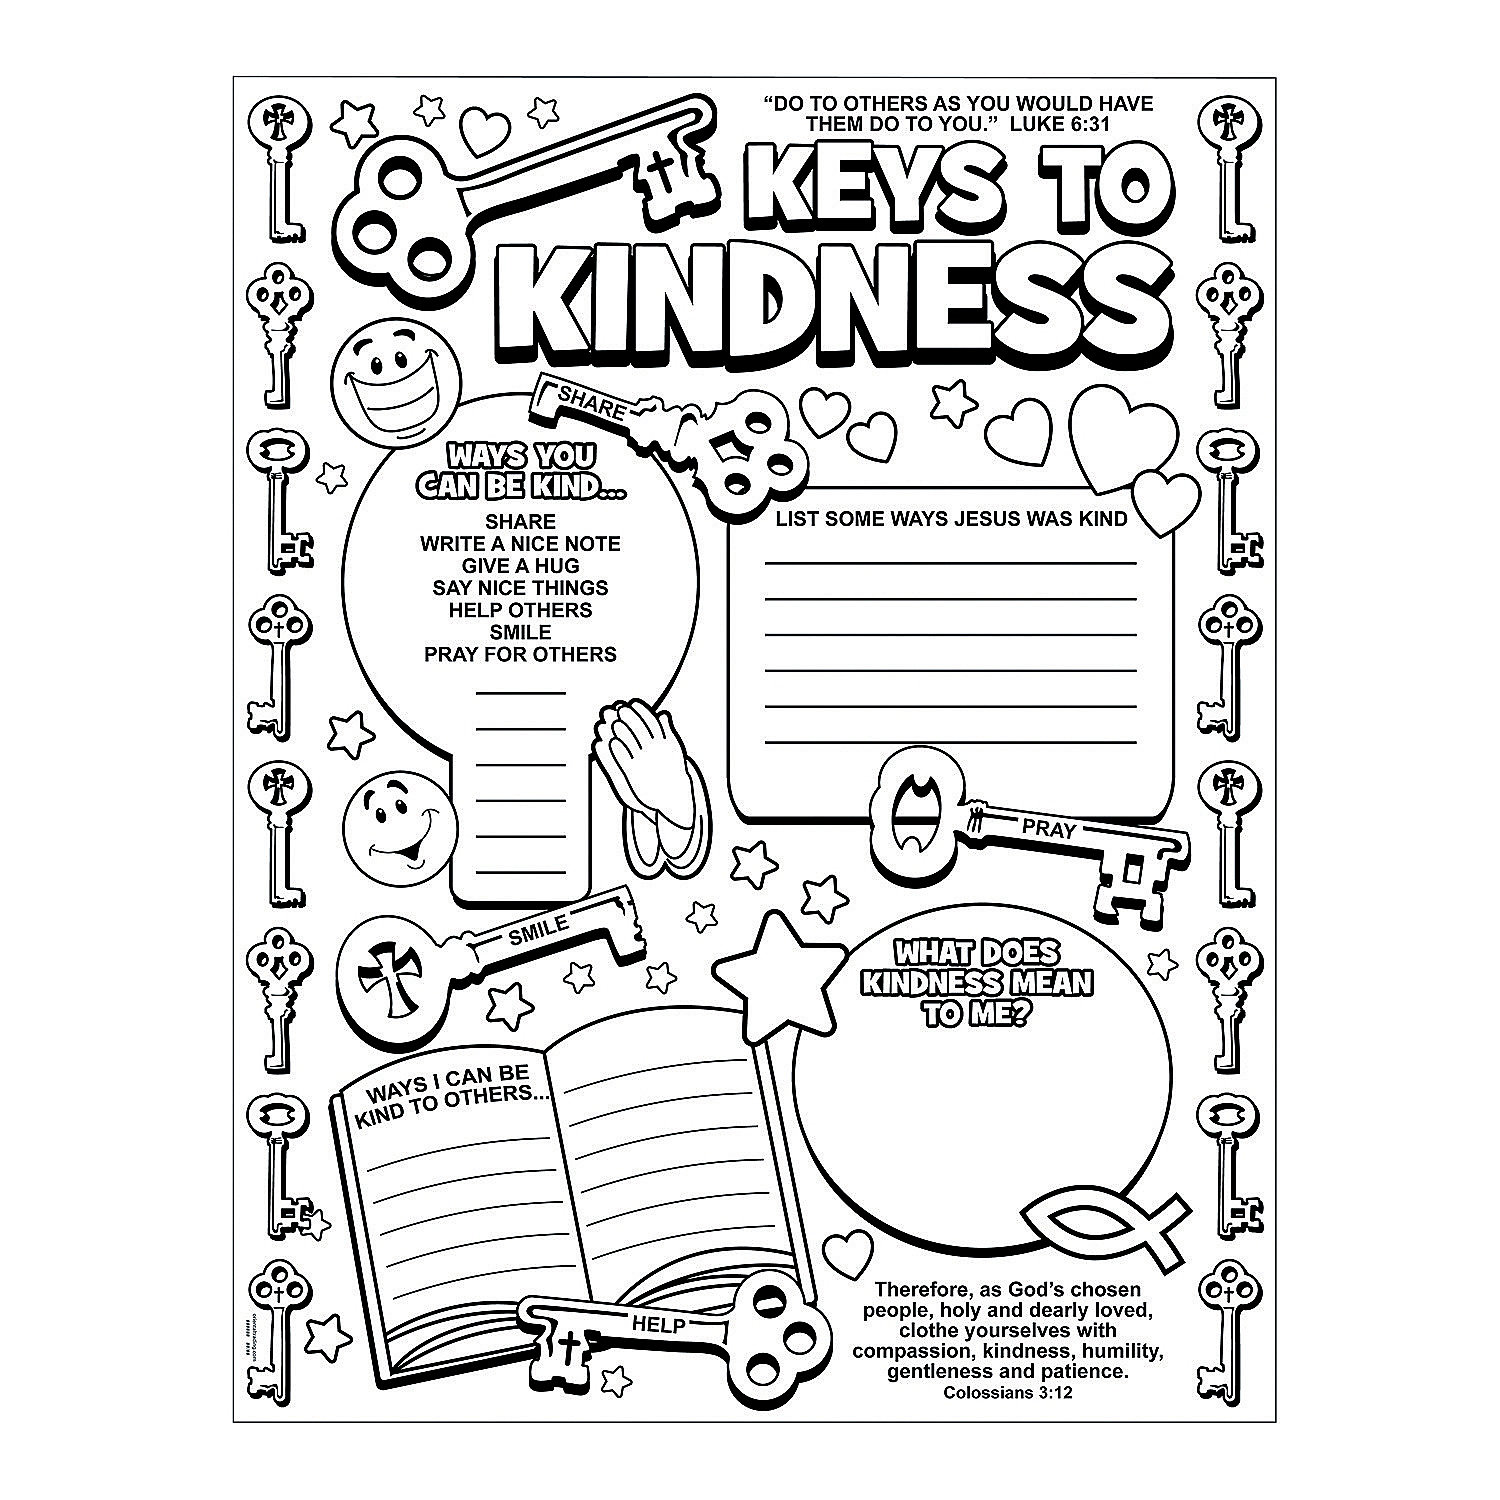 Acts Of Kindness Coloring Pages At Getcolorings